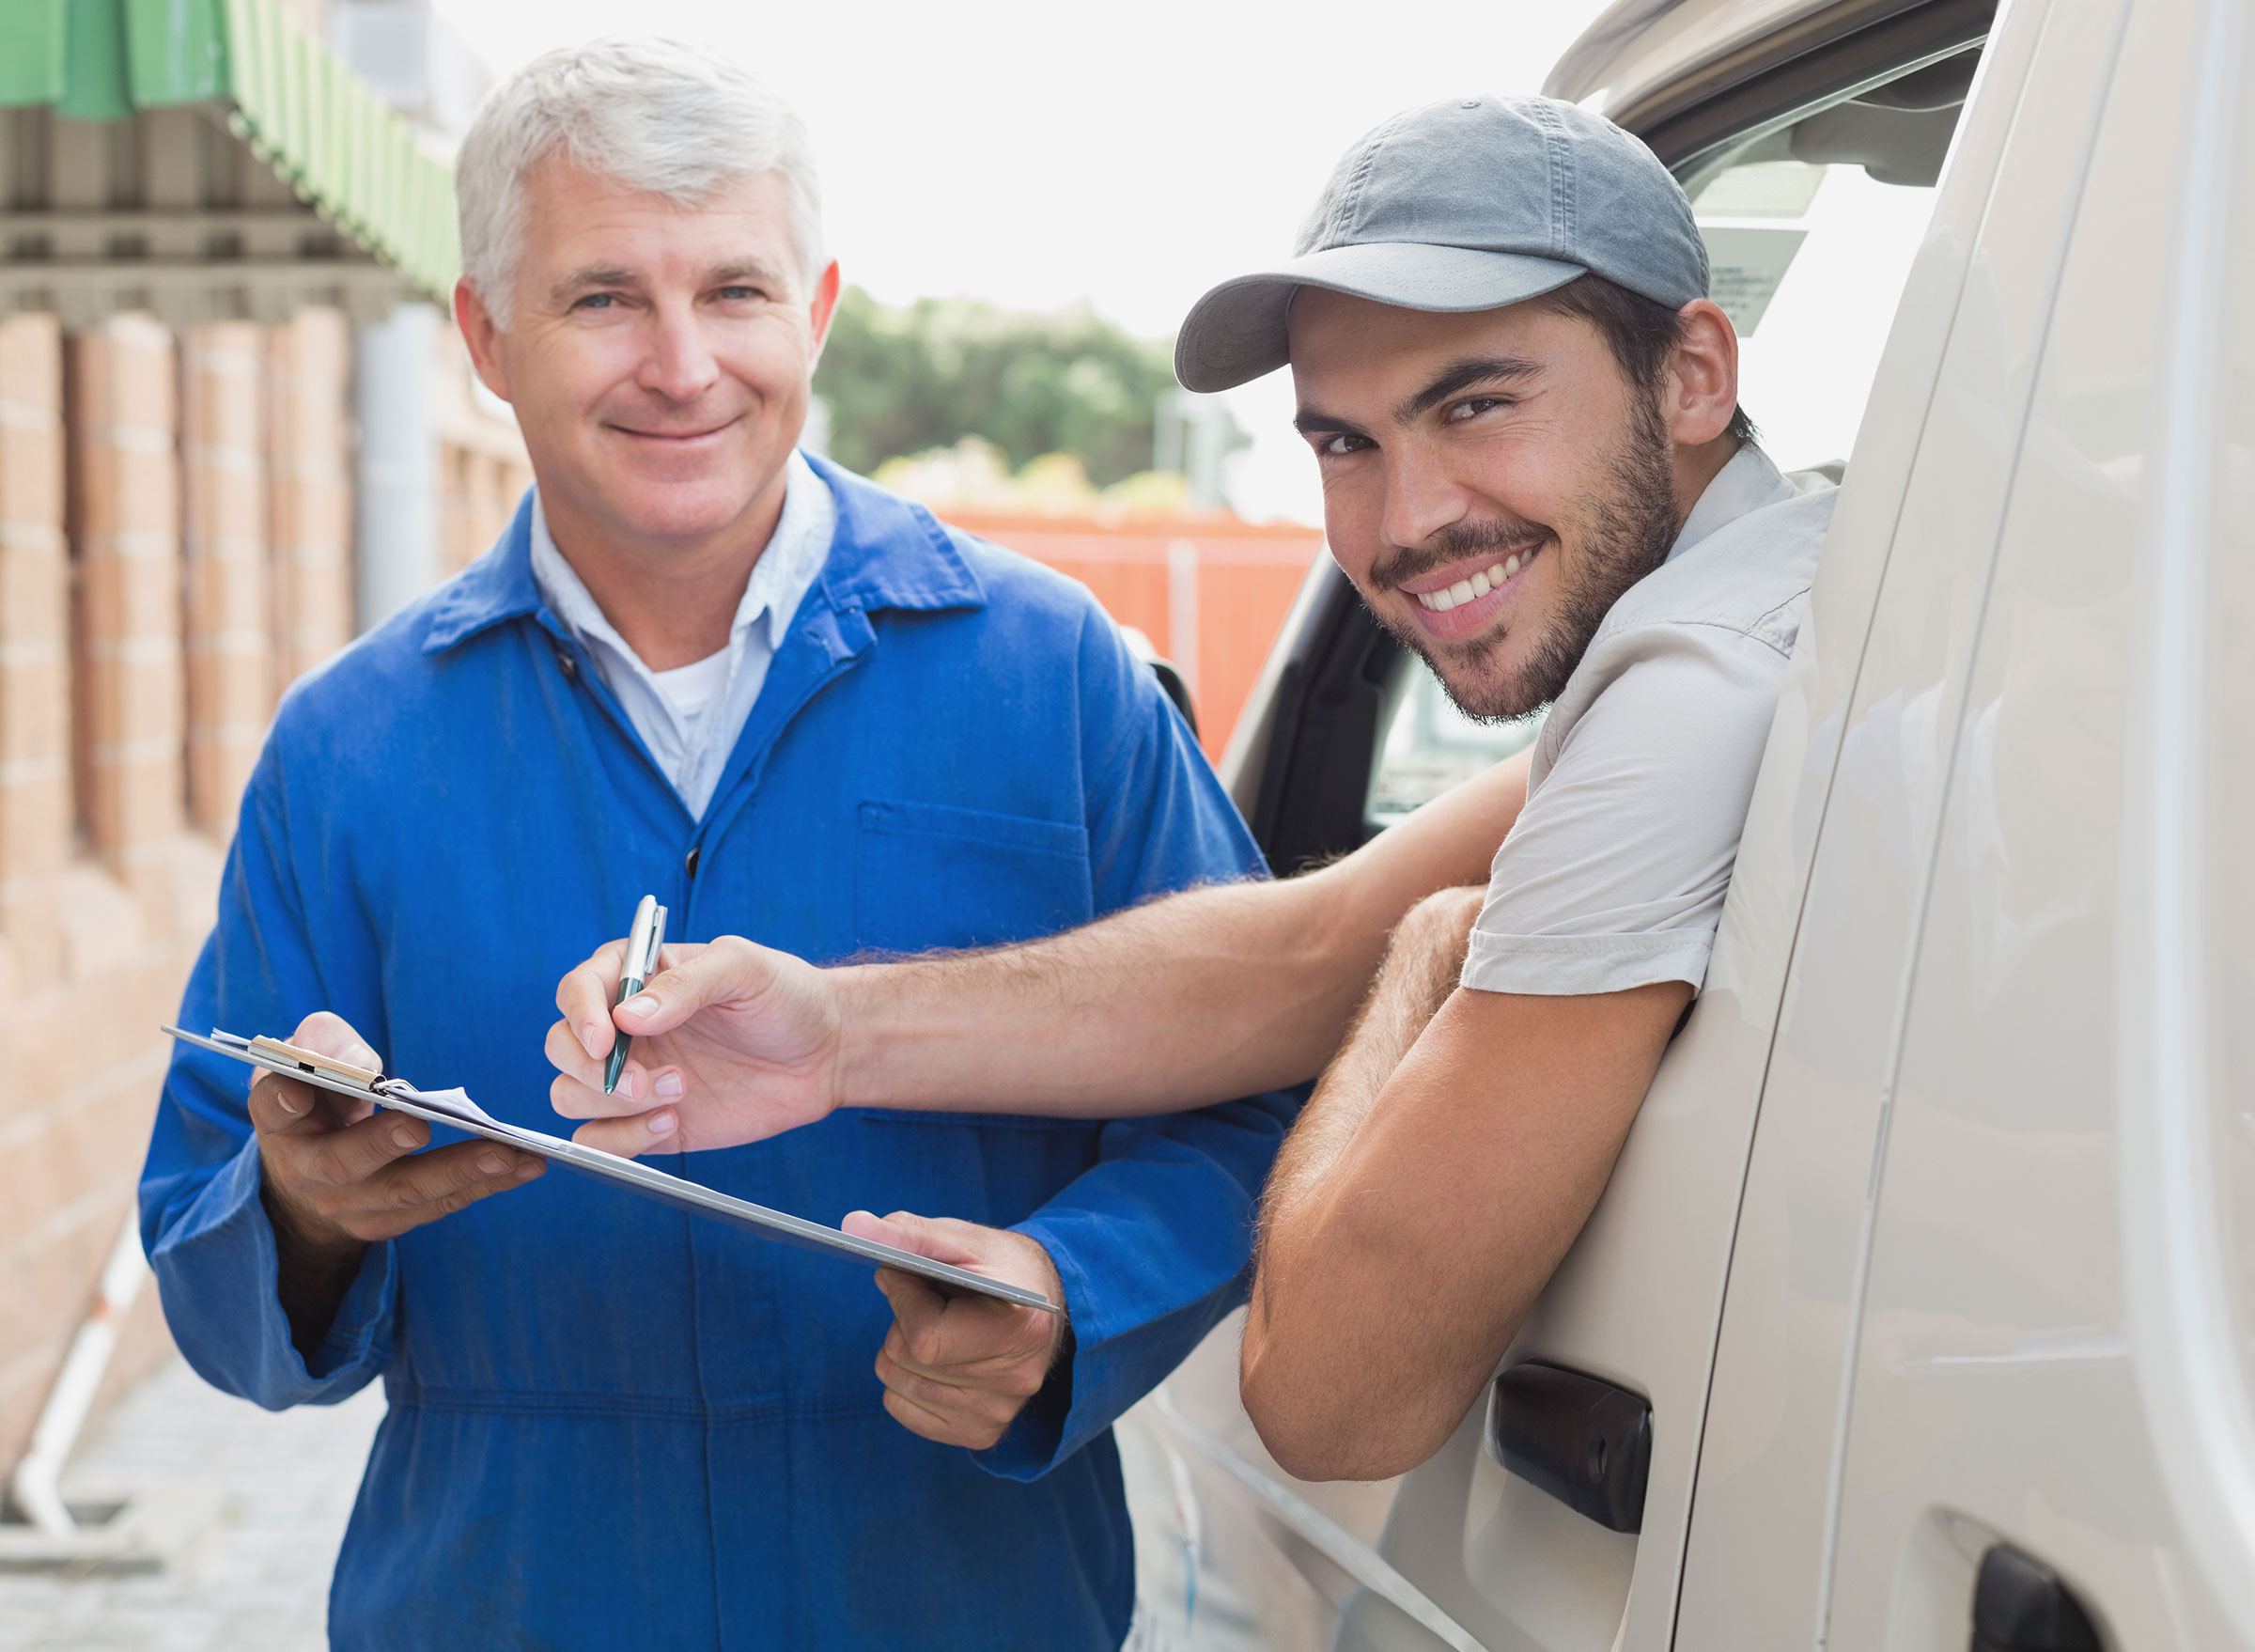 SECURE DOCUMENT COURIER